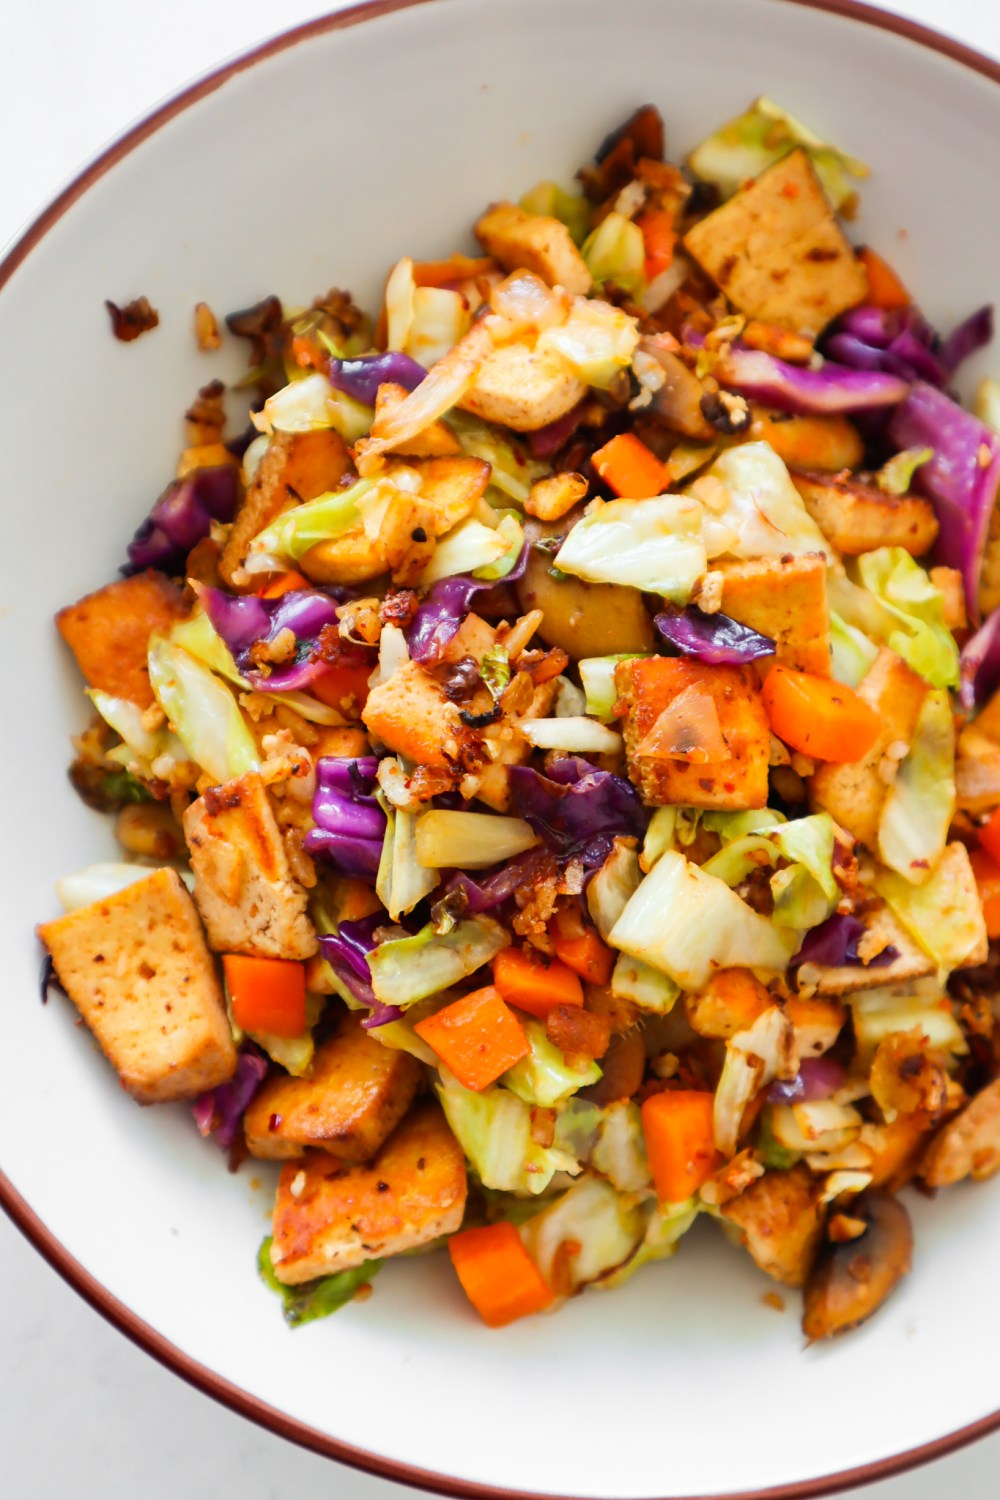 Easy cabbage tofu stir-fry: A vegan cabbage recipe that you will absolutely love! This healthy vegan dinner idea is perfect for busy weeknights, flavorful, delicious and made with cabbage, tofu and more vegetables in about 20 minutes. If you're looking for some no meat gluten-free high-protein recipes, you should try this tasty vegan stir-fry!